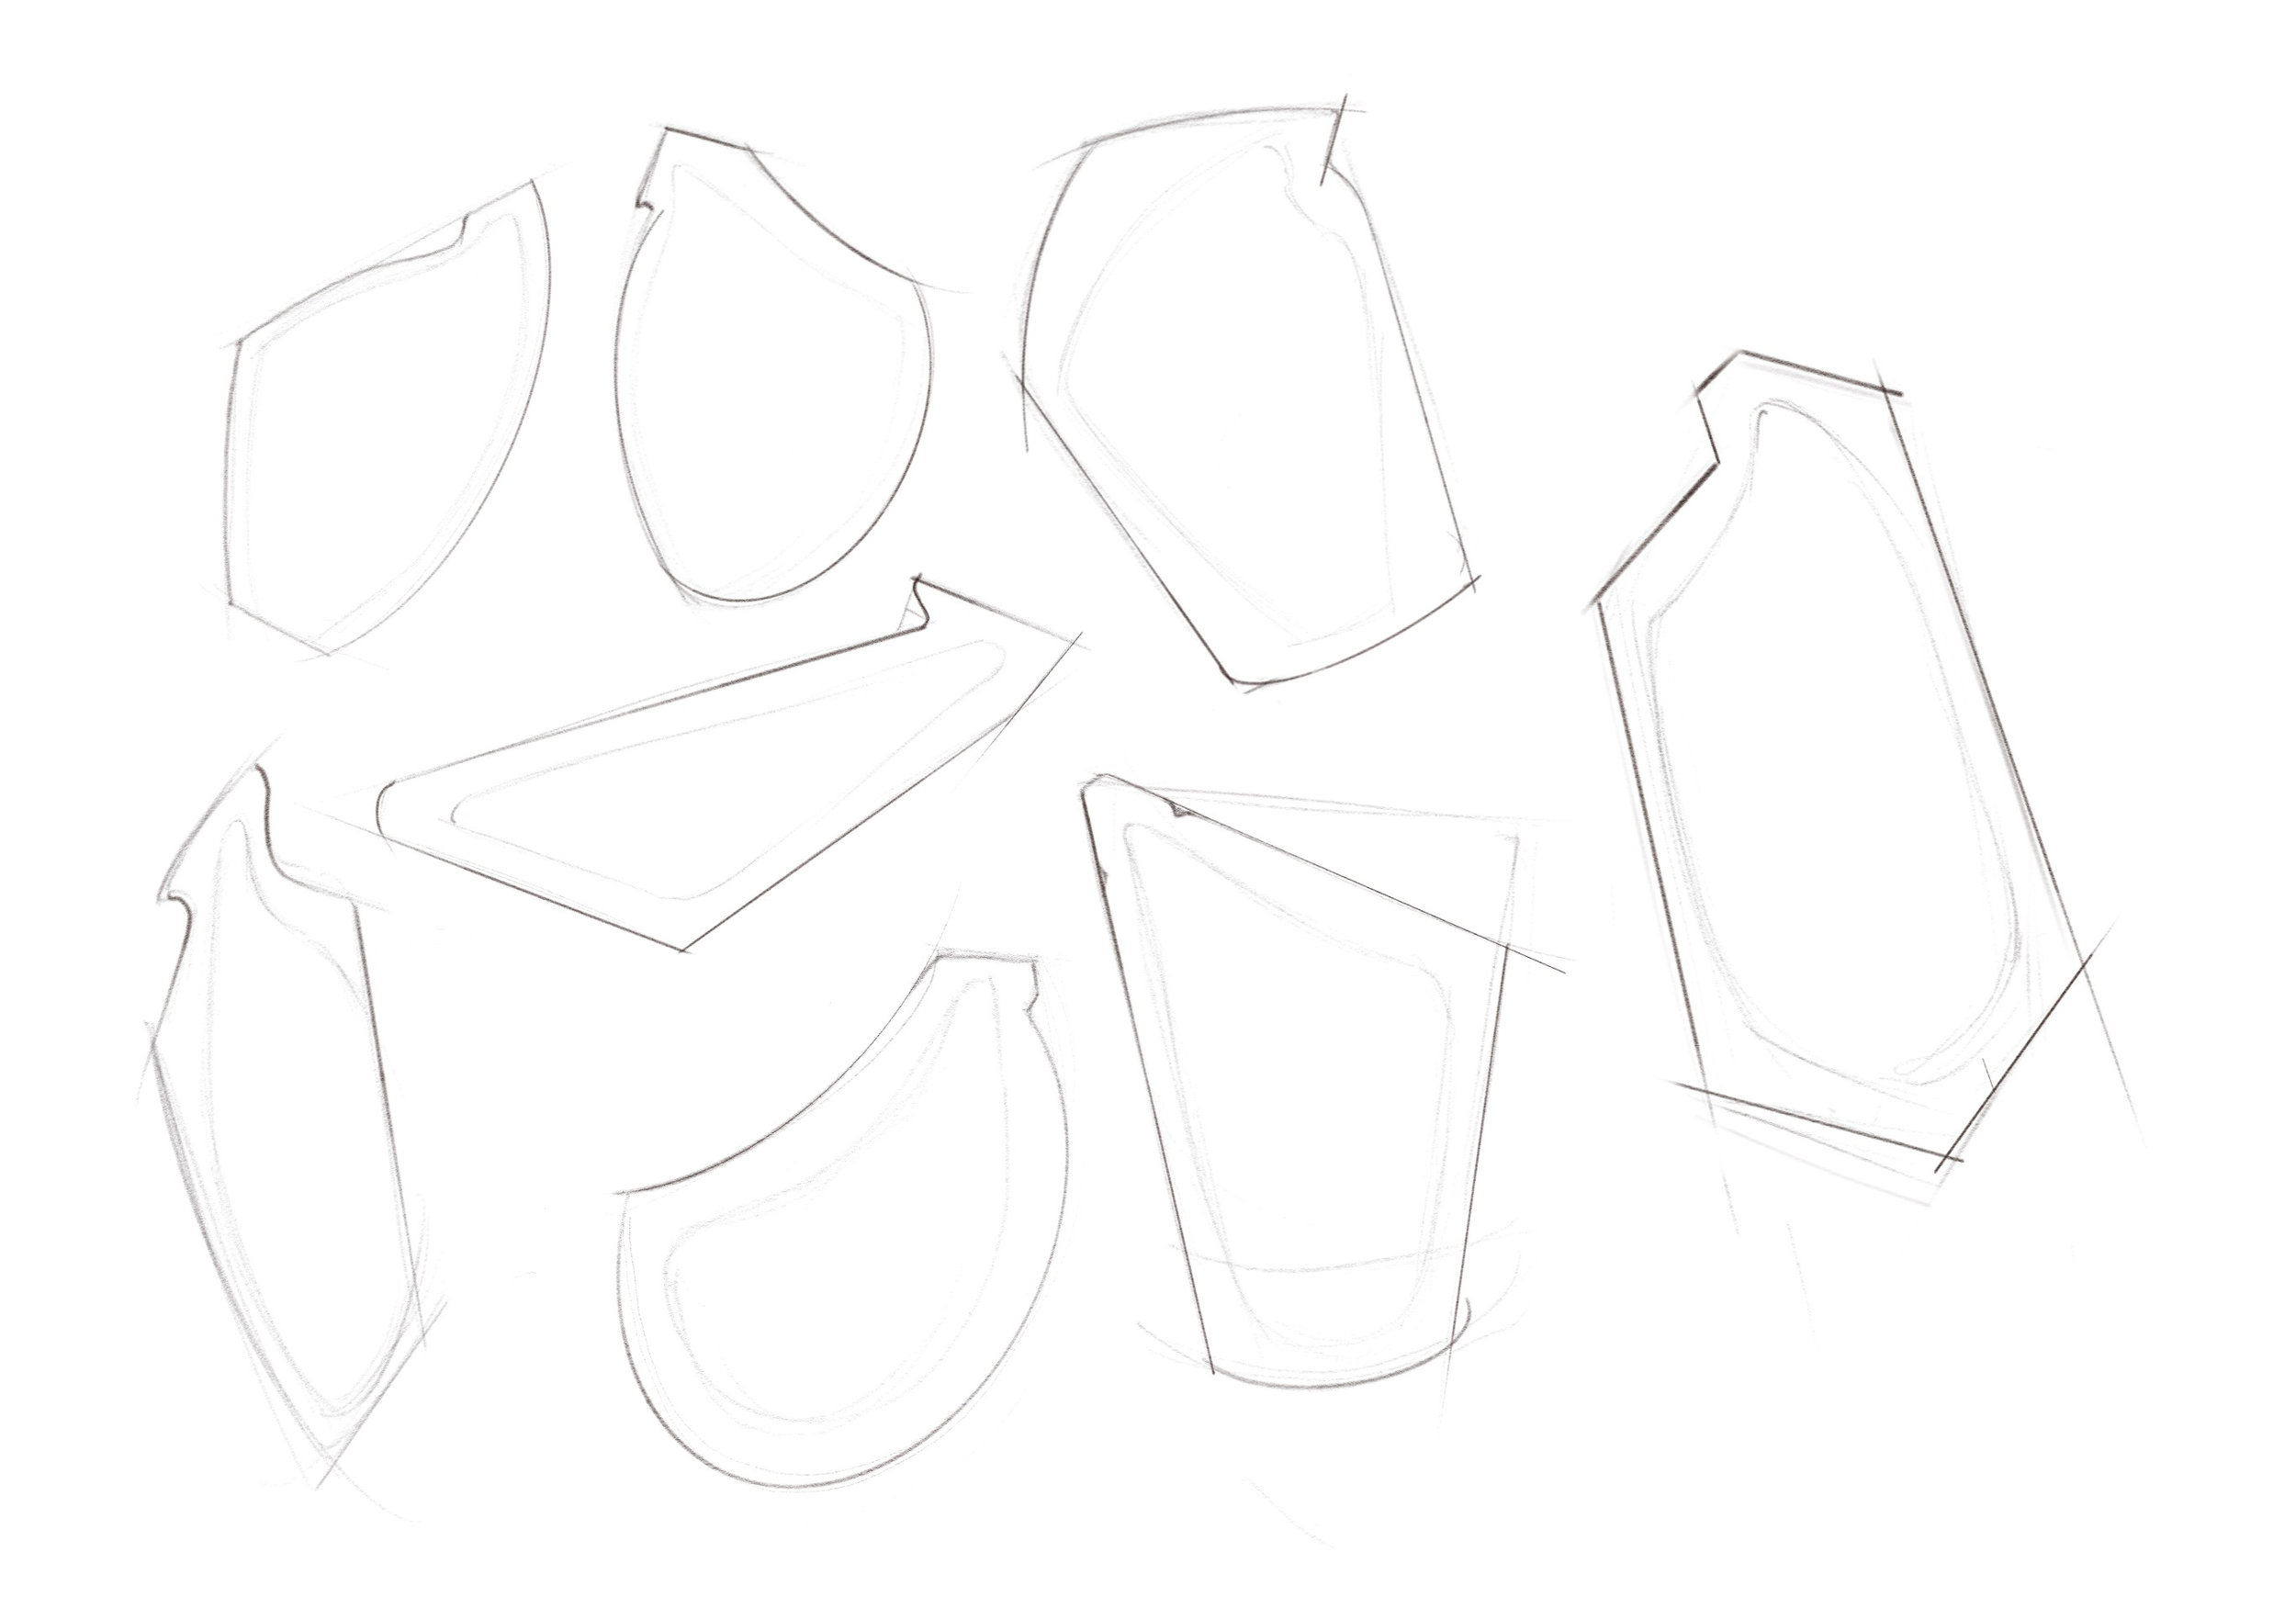 Form sketches for energy gel packaging based on ESM images.